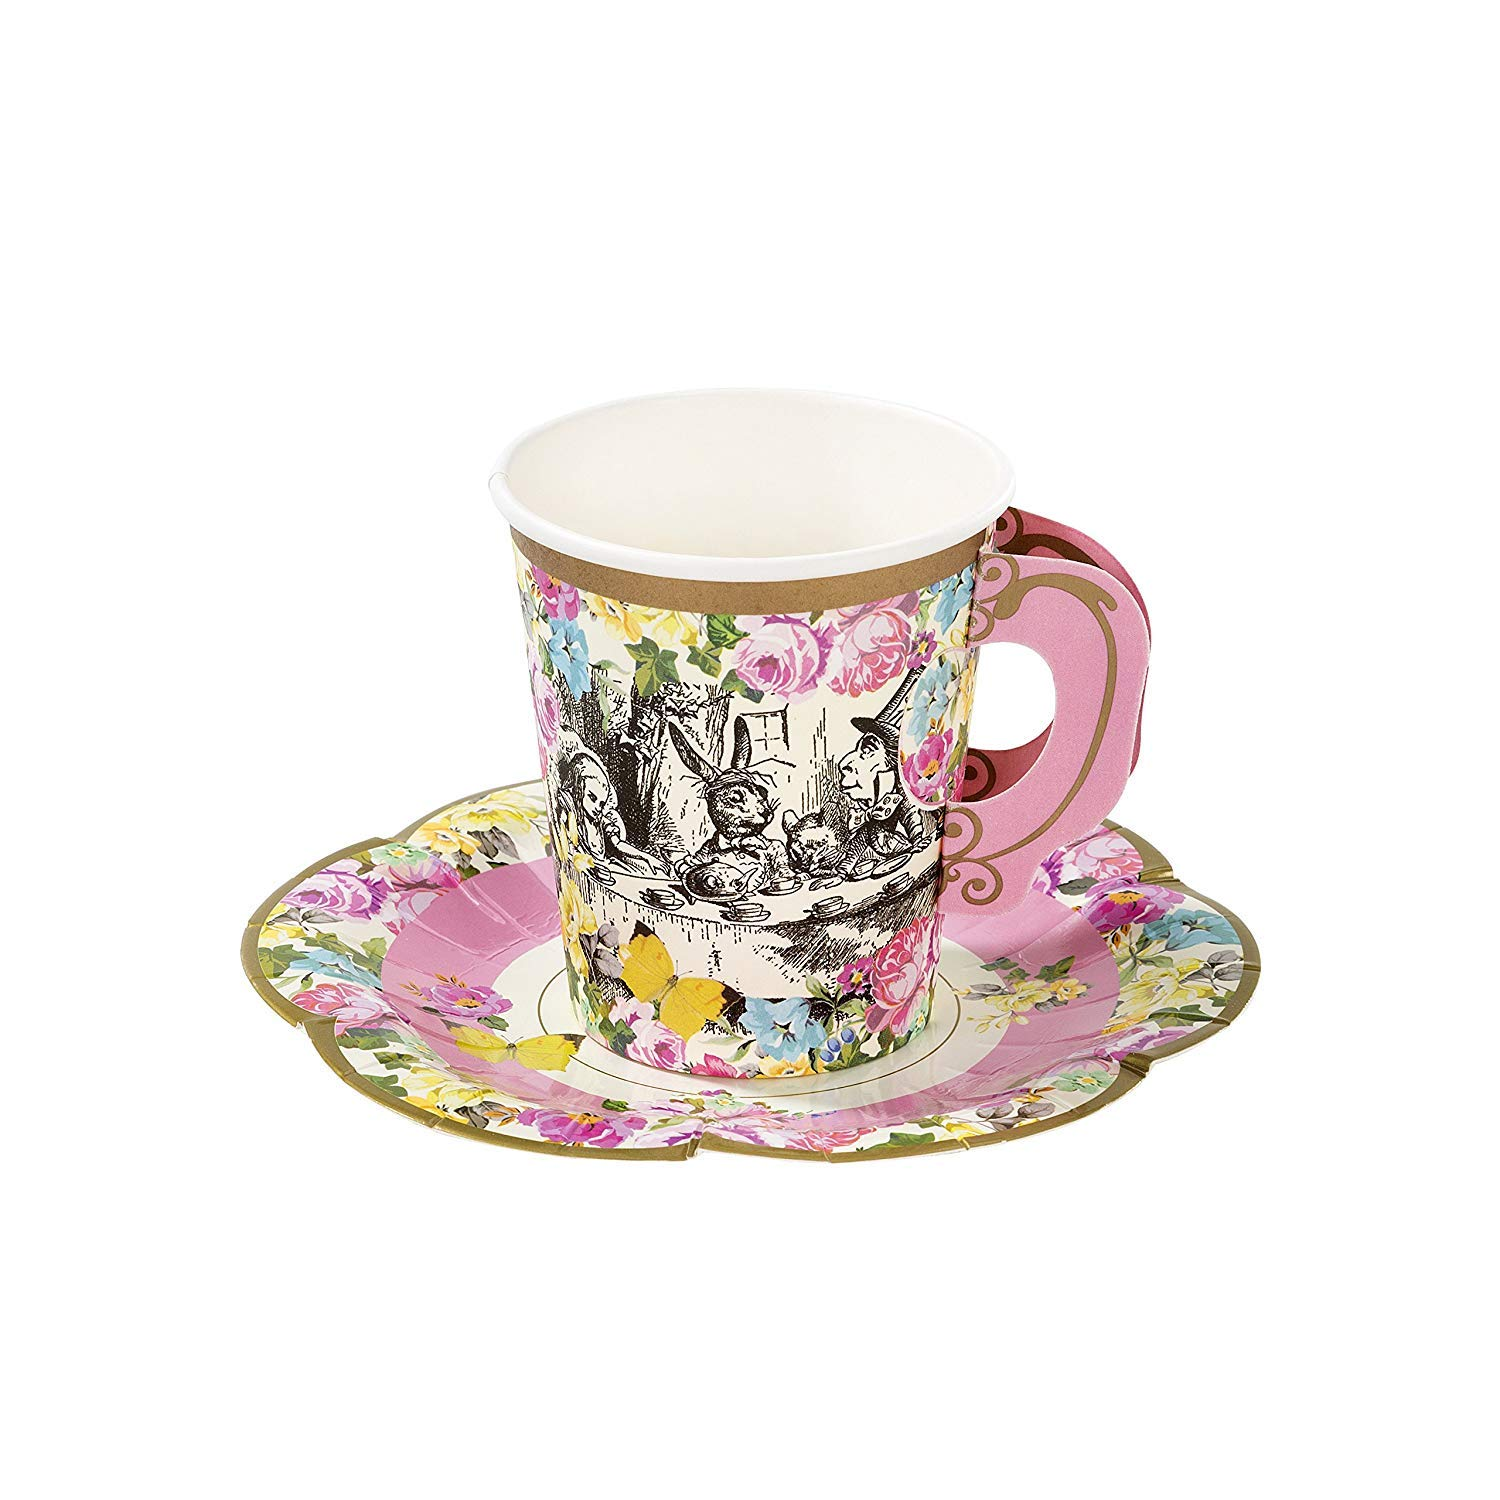 Talking Tables Alice In Wonderland Party Supplies | Tea Cups And Saucer Sets | Great For Mad Hatter Tea Party, Birthday Party And Baby Shower | Paper, 12 Pack